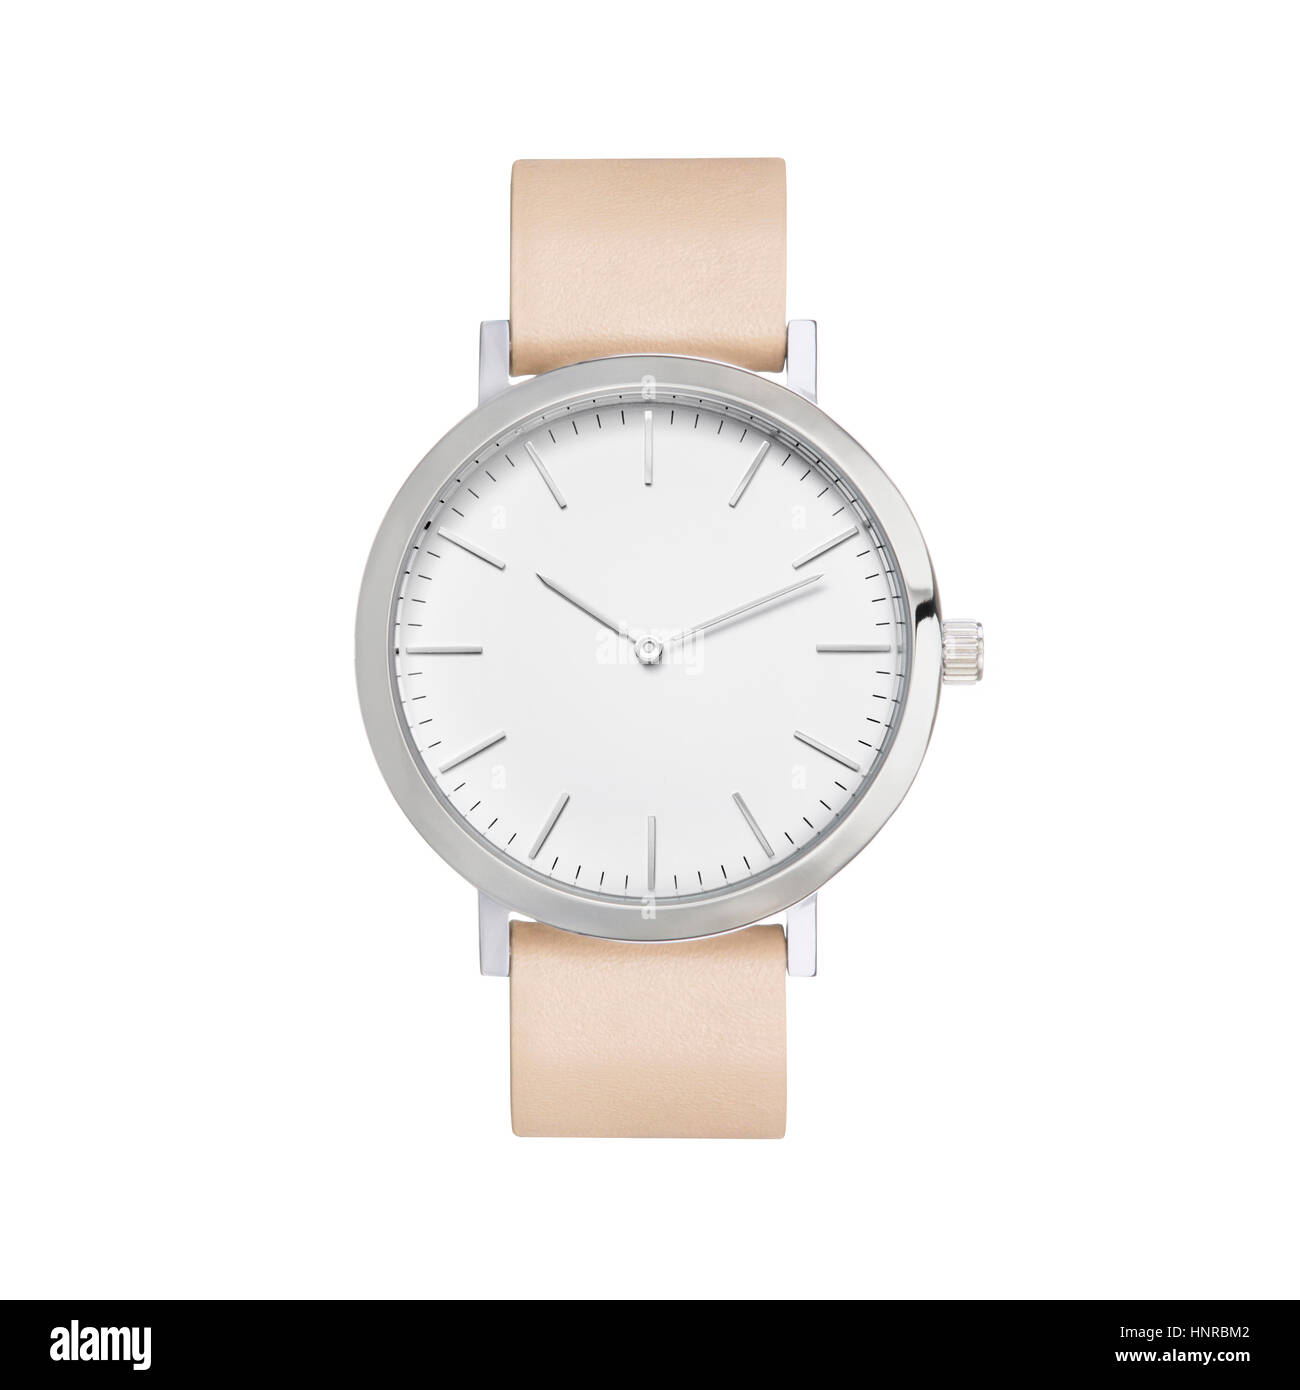 Wrist watch angle product style with white background, shinny metallic finish. - Stock Image